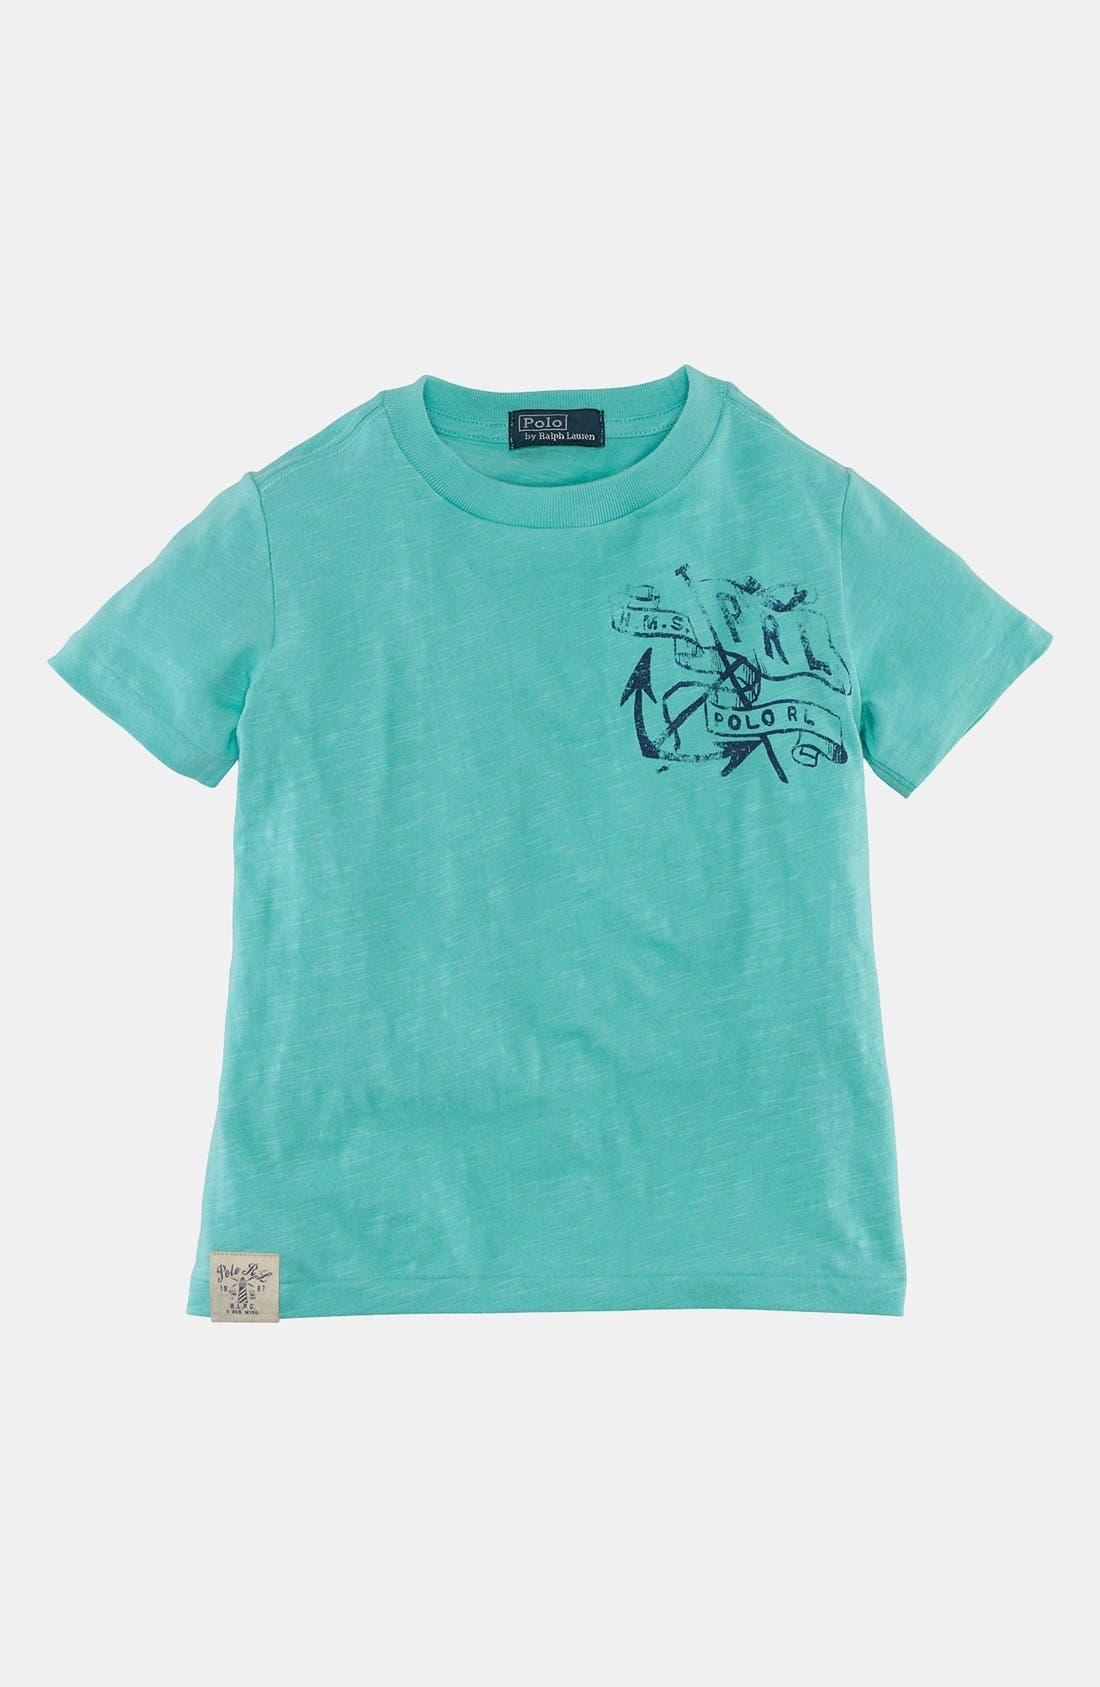 Alternate Image 1 Selected - Polo Ralph Lauren T-Shirt (Toddler Boys)